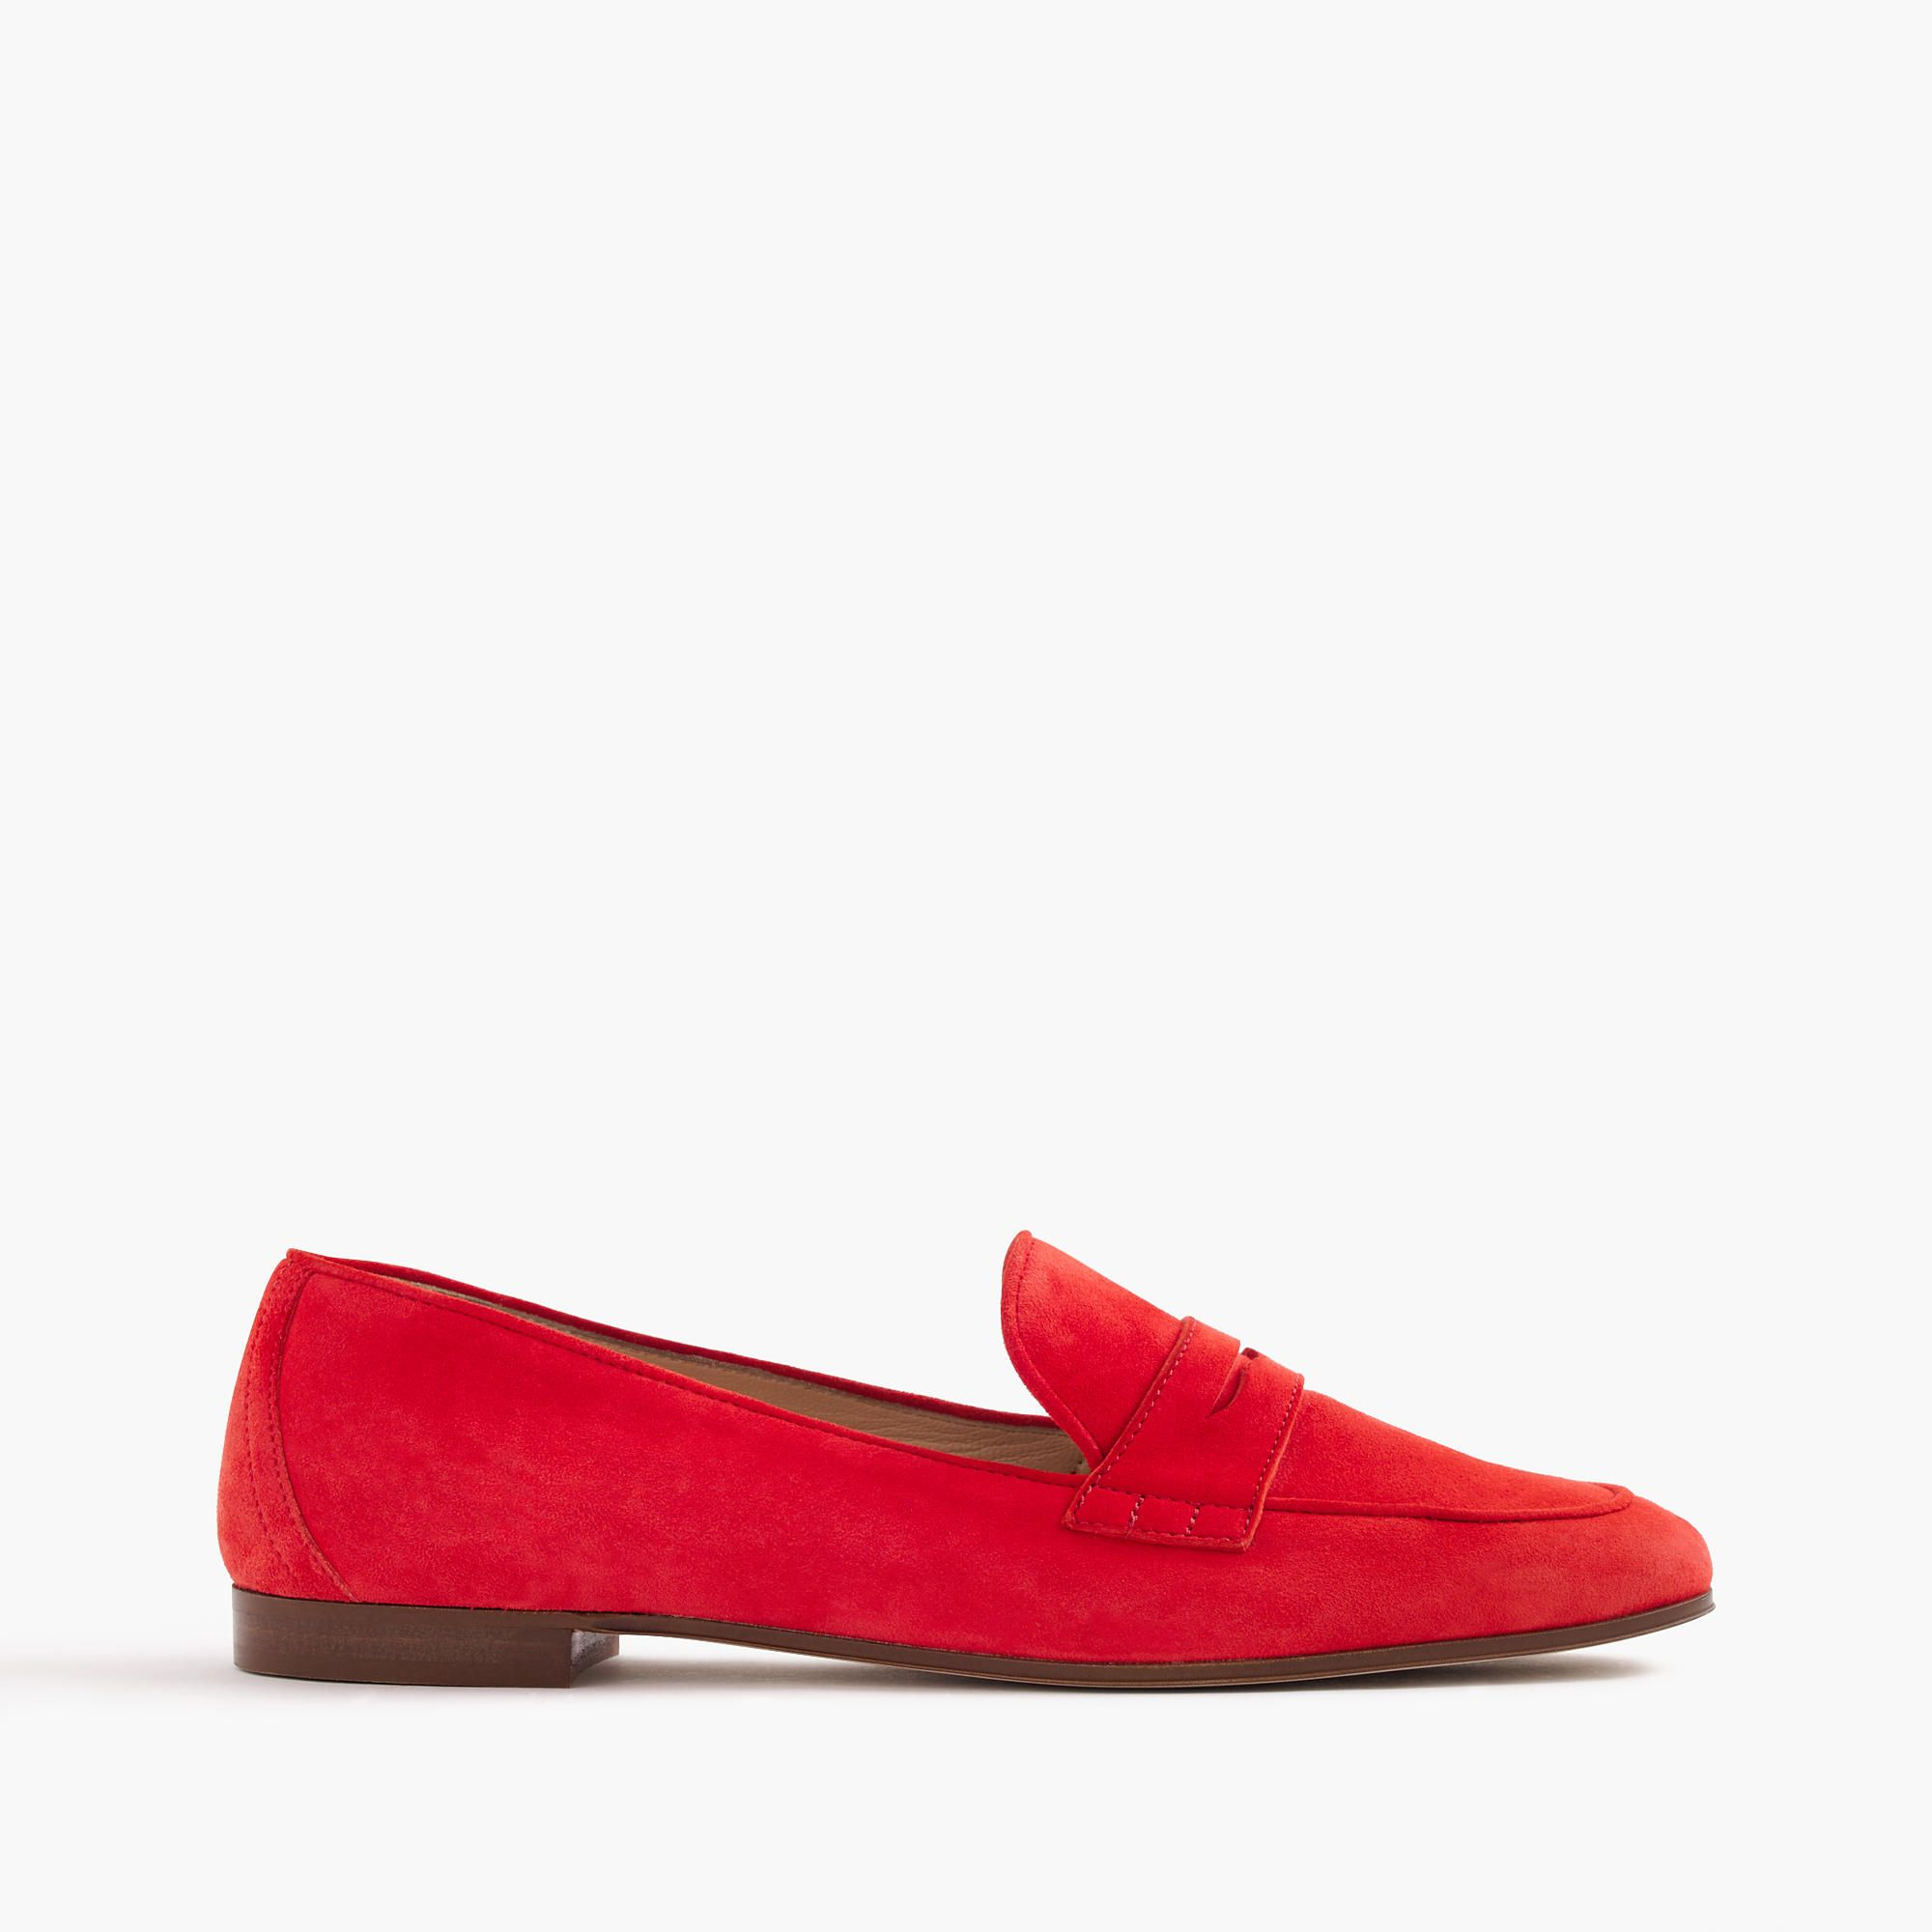 472edd143c7 J.Crew - Charlie penny loafers in suede